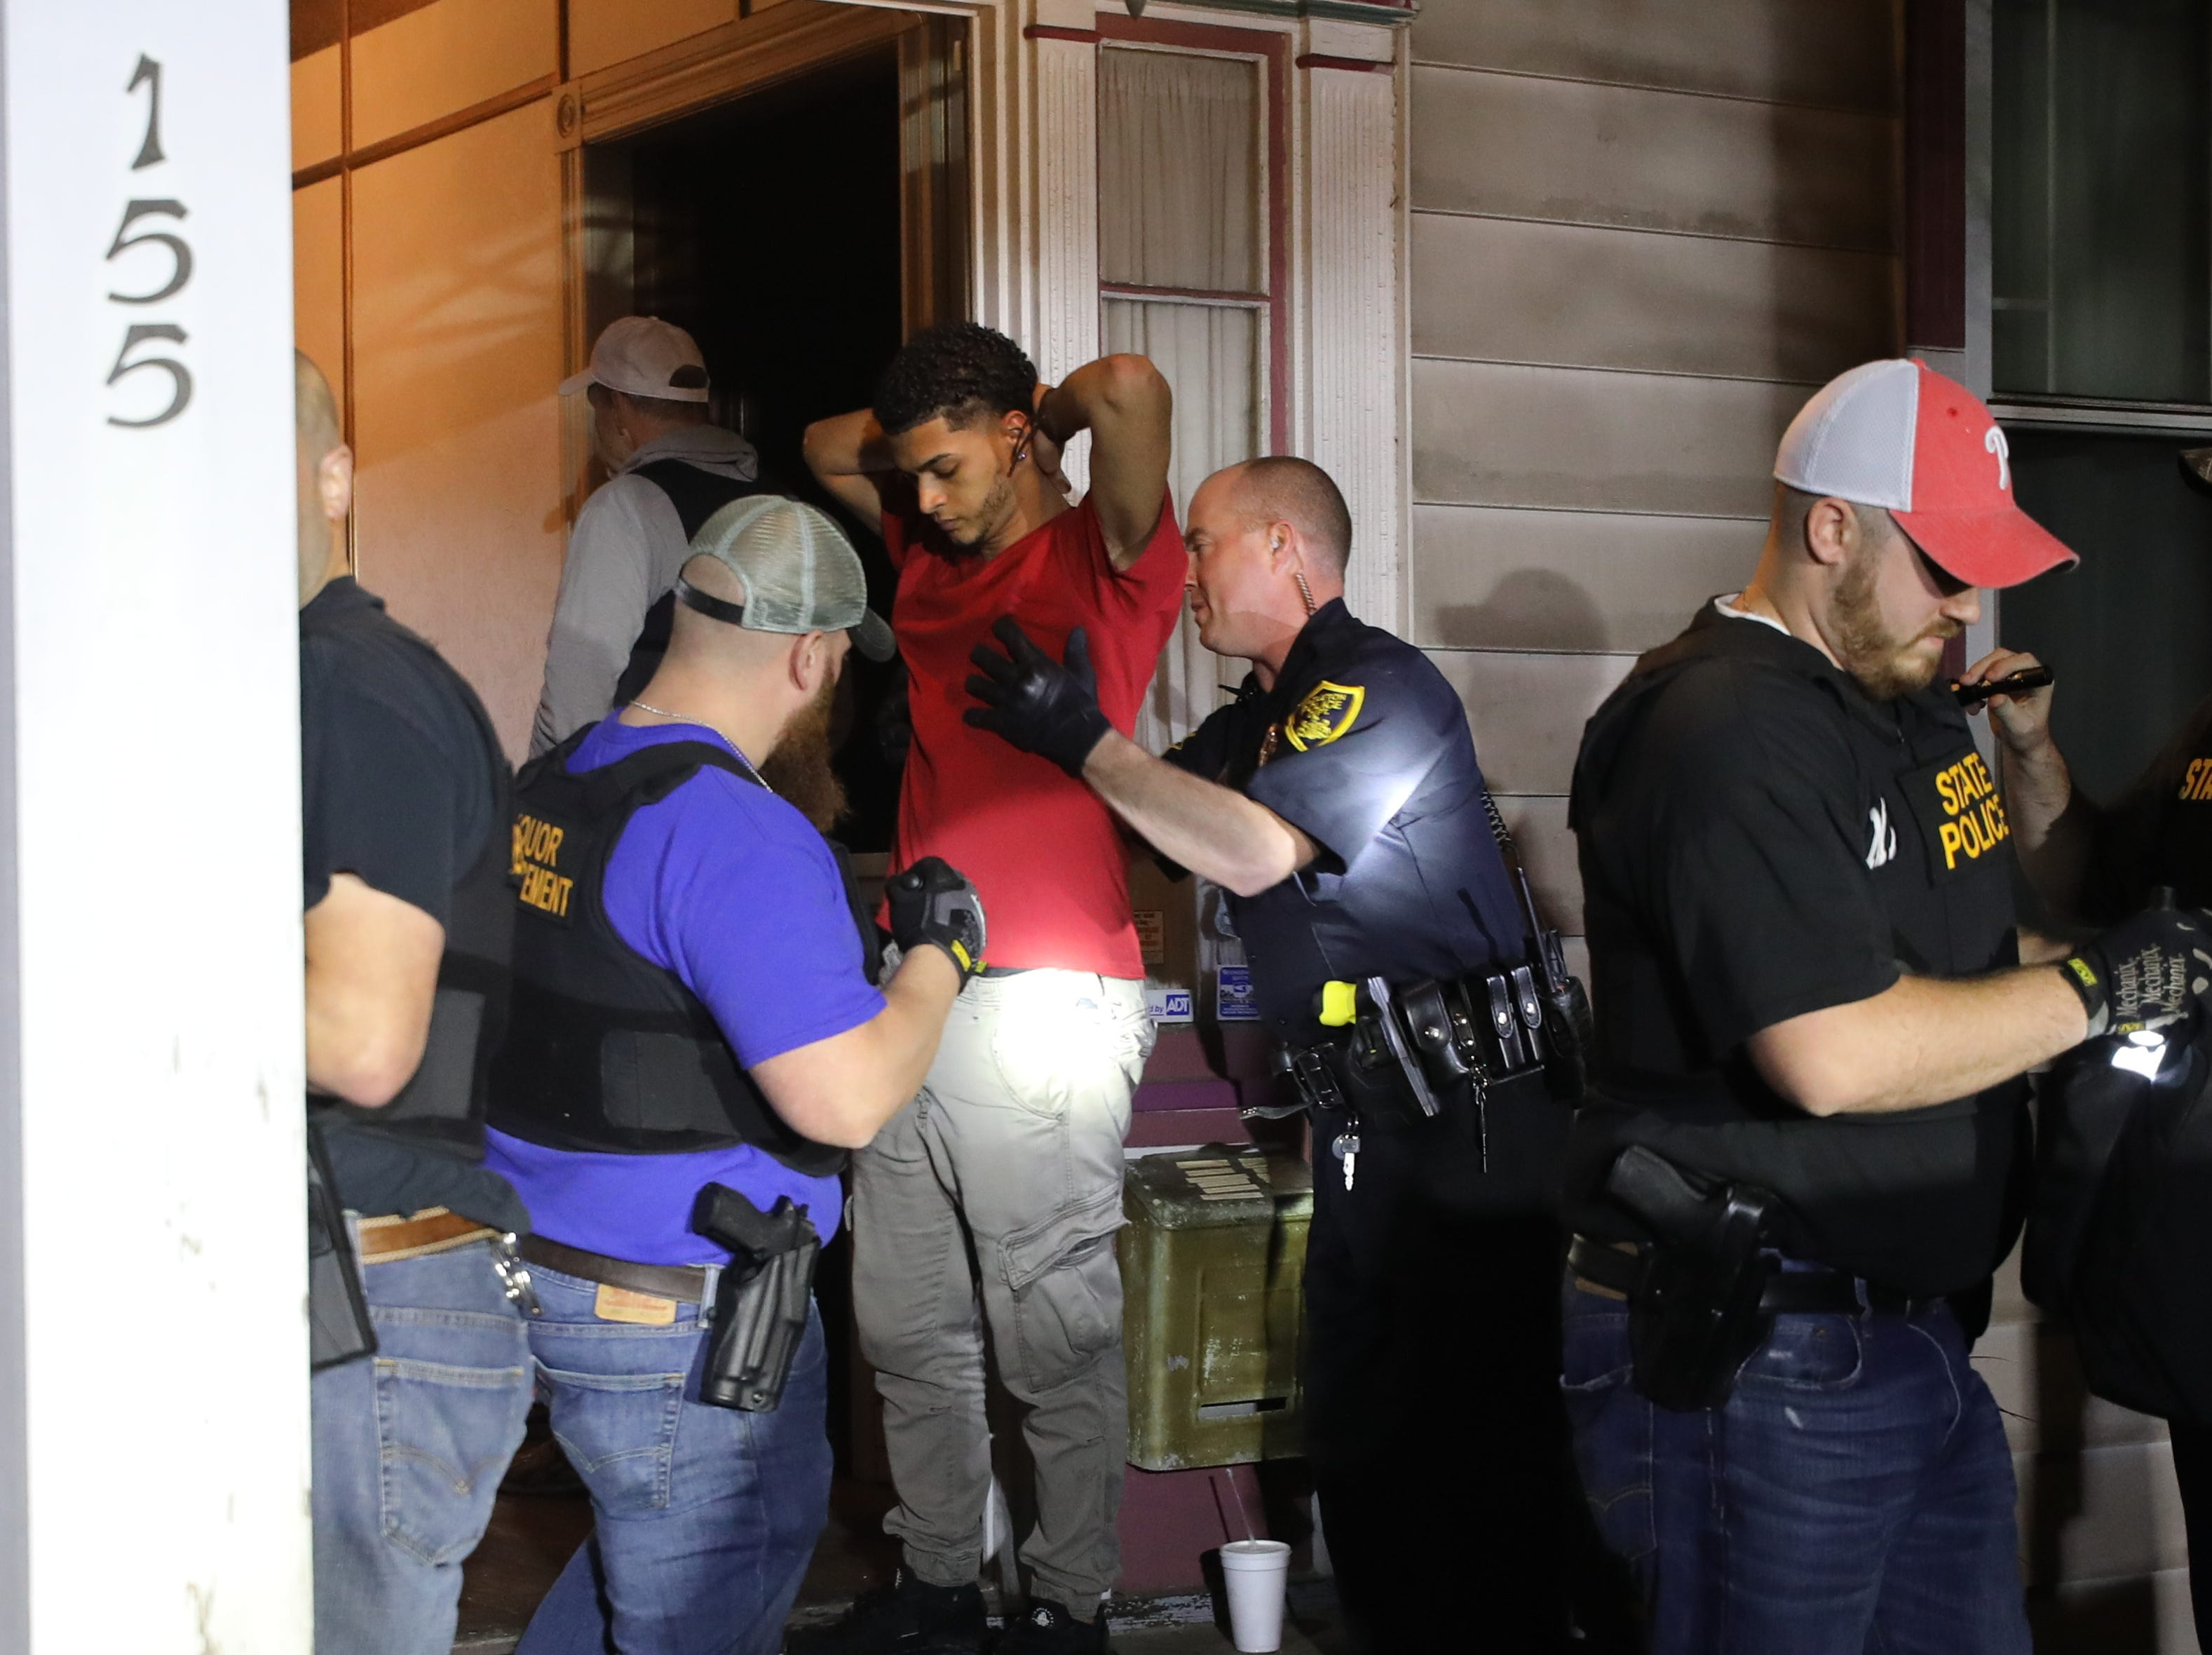 Police searched those patronizing a residential home in Hazleton that was allegedly serving alcohol illegally after hours. Police raided the home that was run by Dominican immigrants. Hazleton officials believe some of the immigrant population of the town are not familiar with local laws and sometimes break the laws unknowingly.